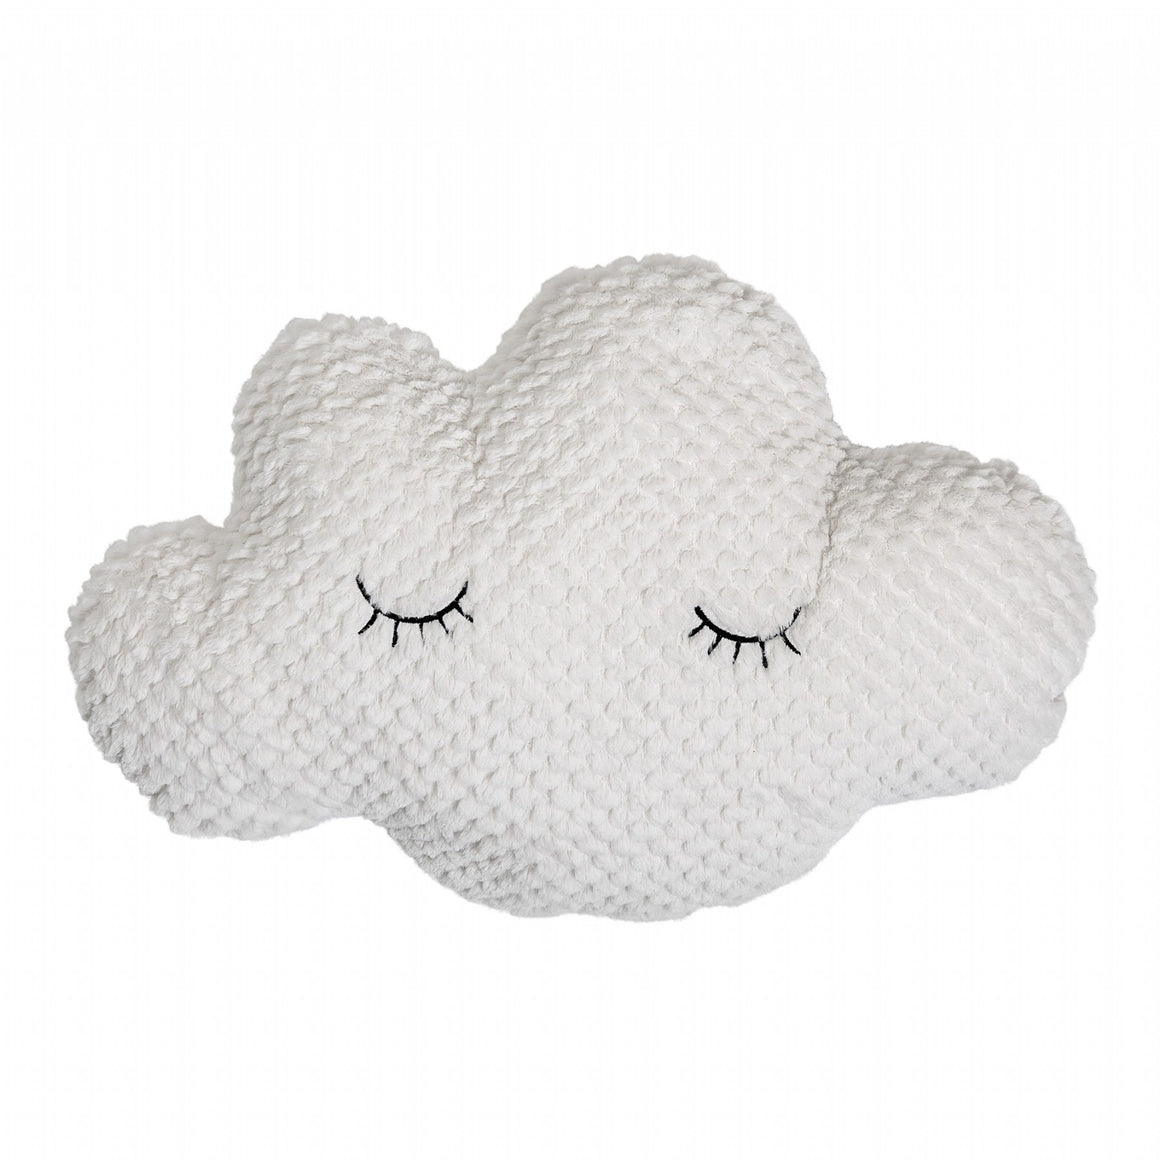 BLOOMINGVILLE -Cloud cushion - Frenchbazaar -Bloomingville